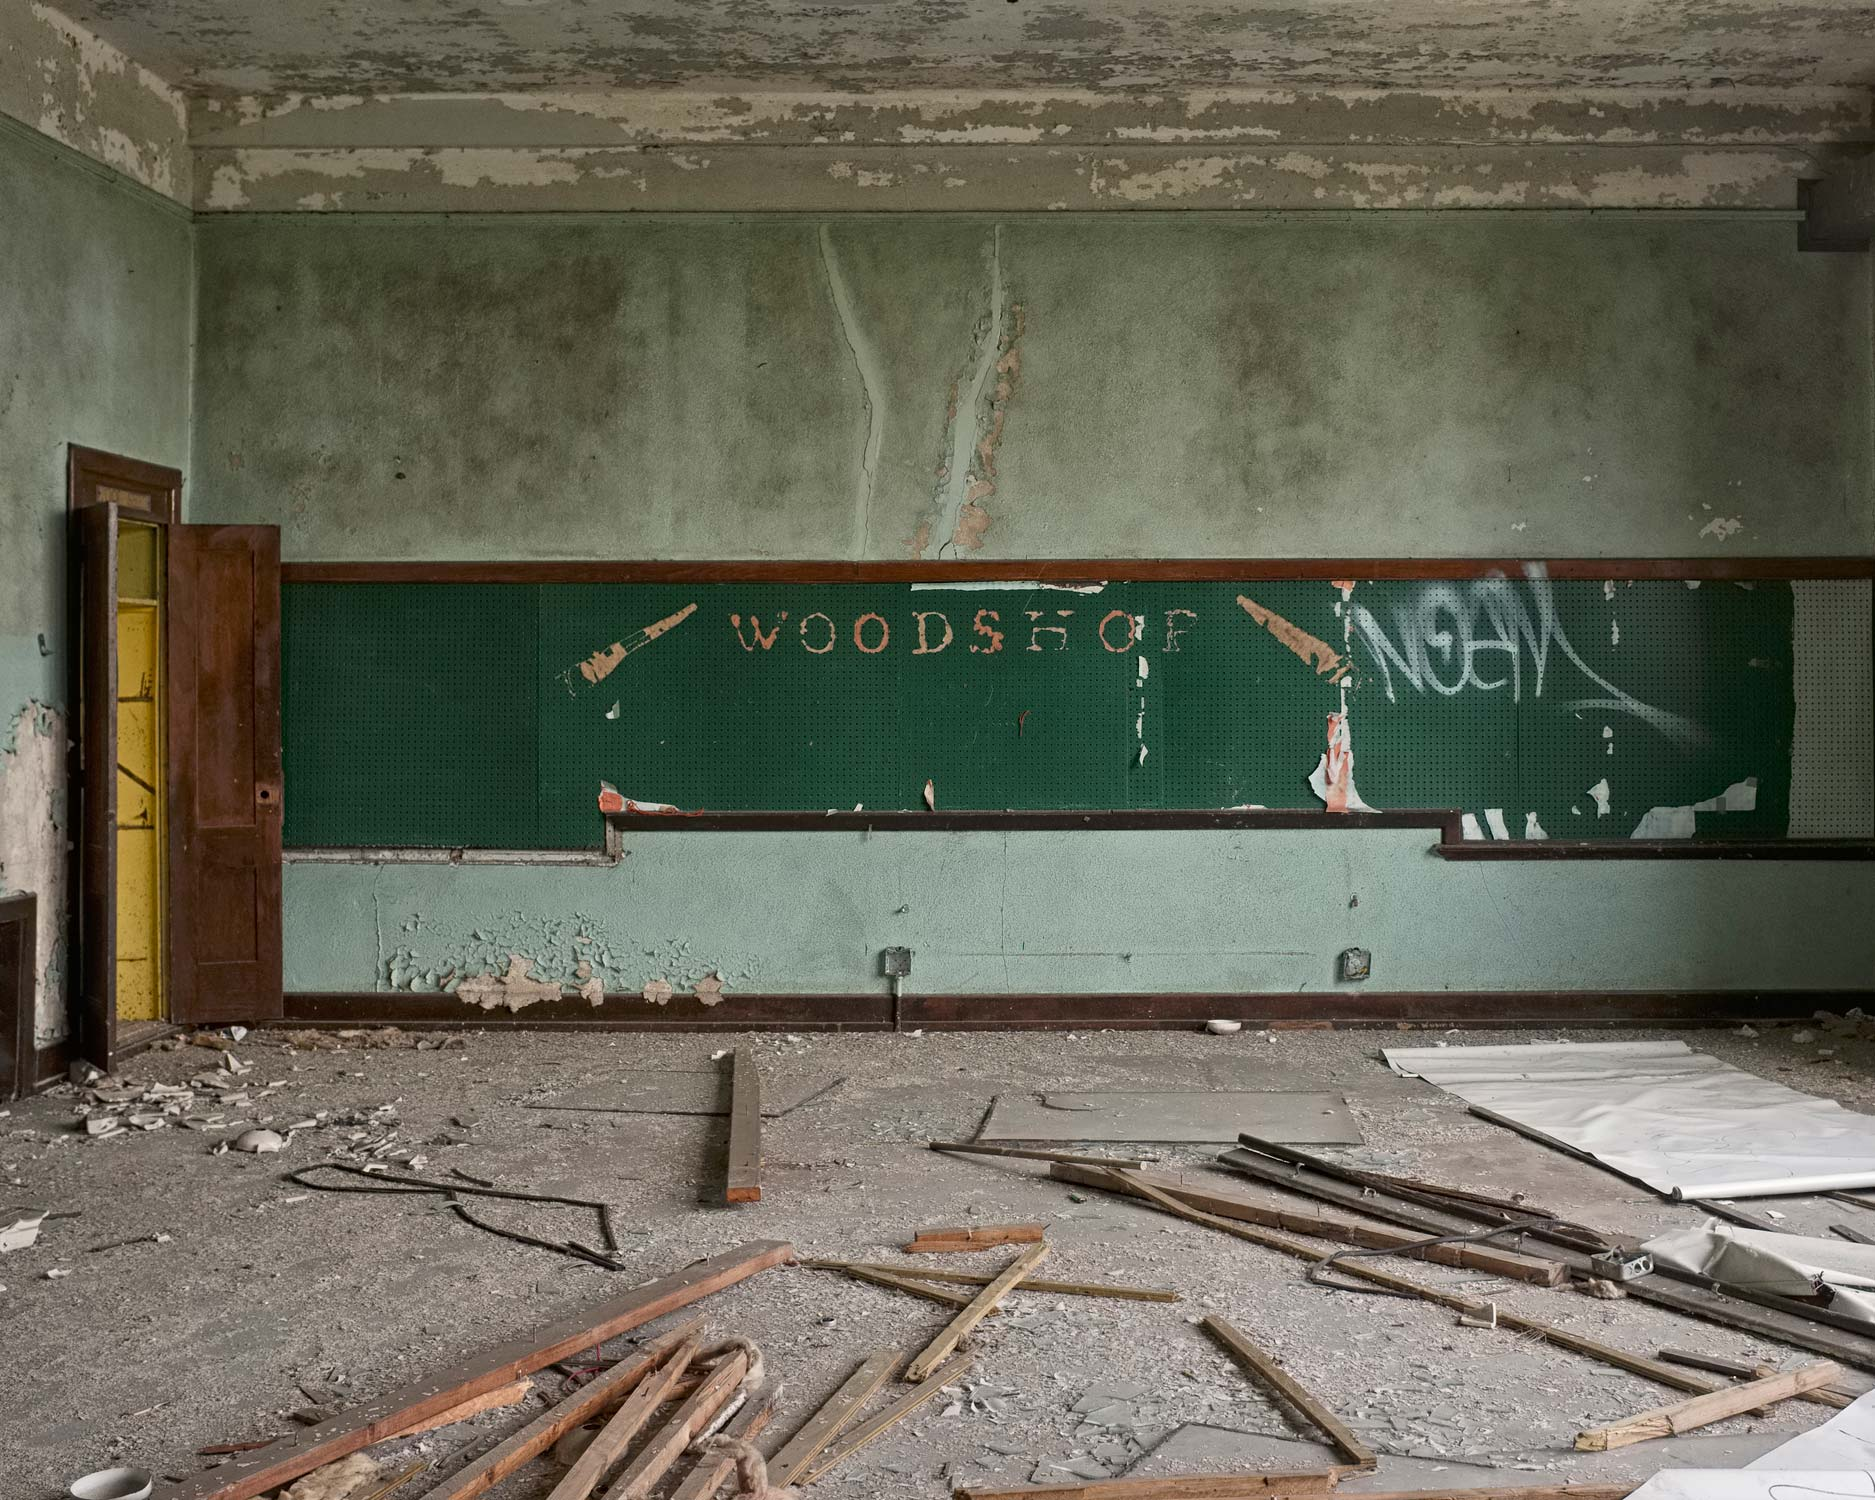 043_Detroit_CrossmanSchool.jpg